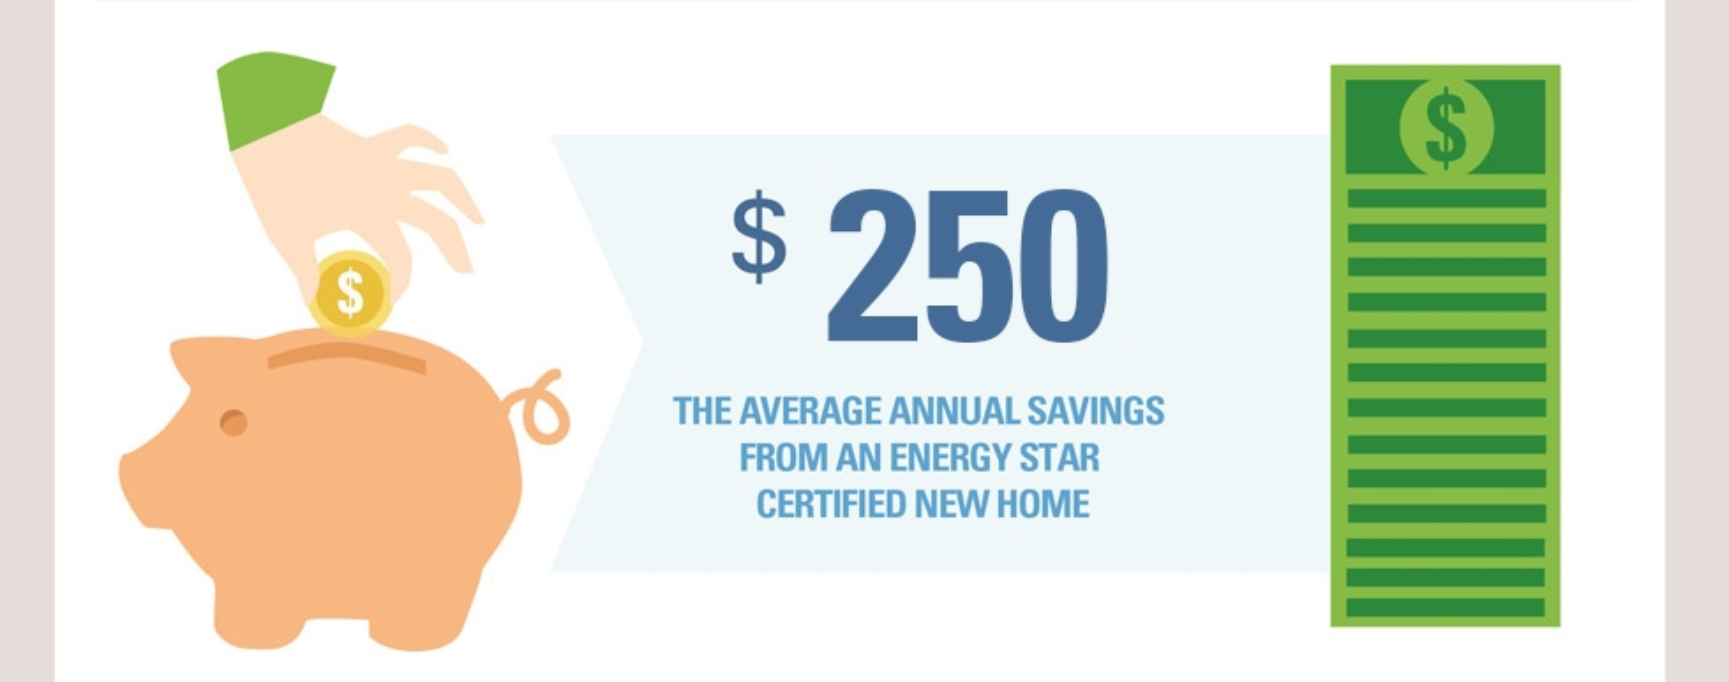 The Savings Infographic thumbnail